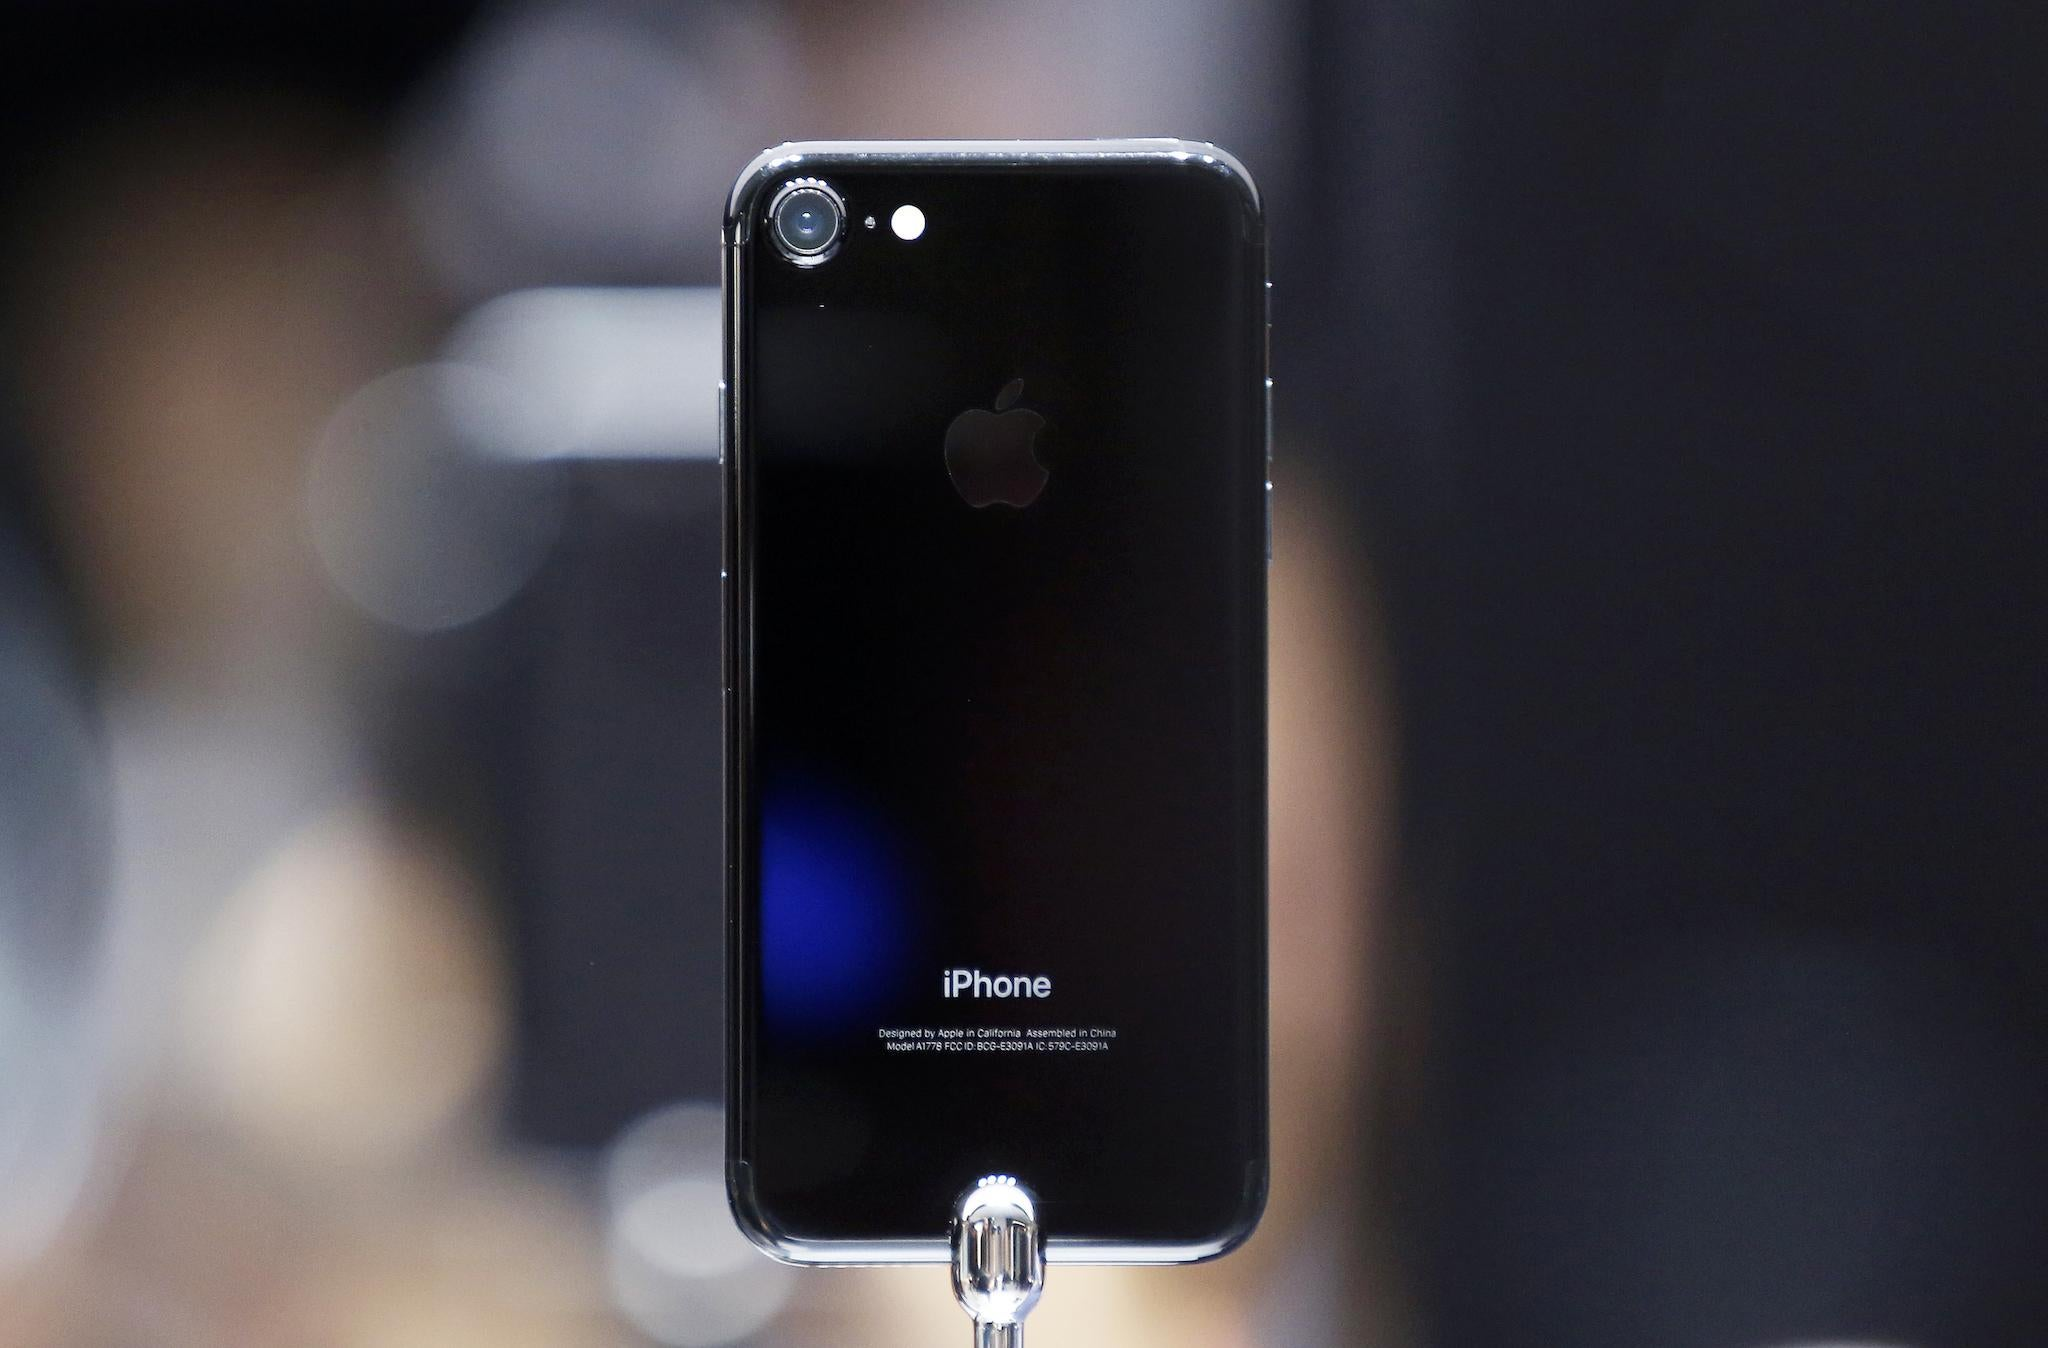 iPhone 7 hands-on: A gorgeous phone with just enough innovation to keep fans excited